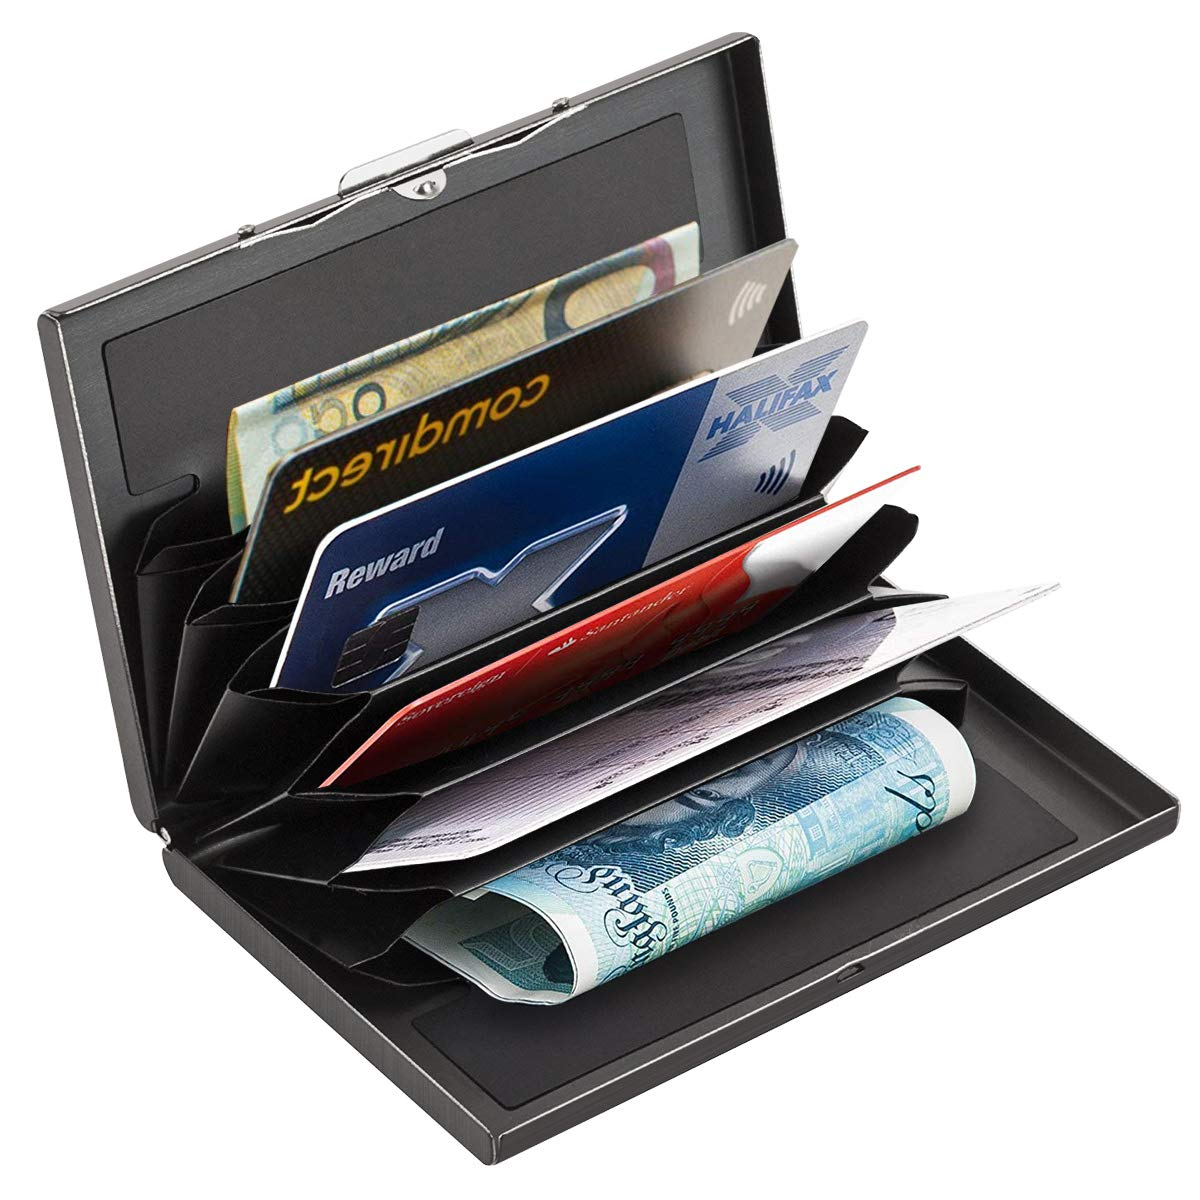 Slim RFID Credit Card Protector Wallet with 6 Card Slots, Block Identity Thieves, Portable Travel Identity ID/Credit Card Safe Protection Stainless Steel Aluminum Metal Card Holder Hard Case GREHOME